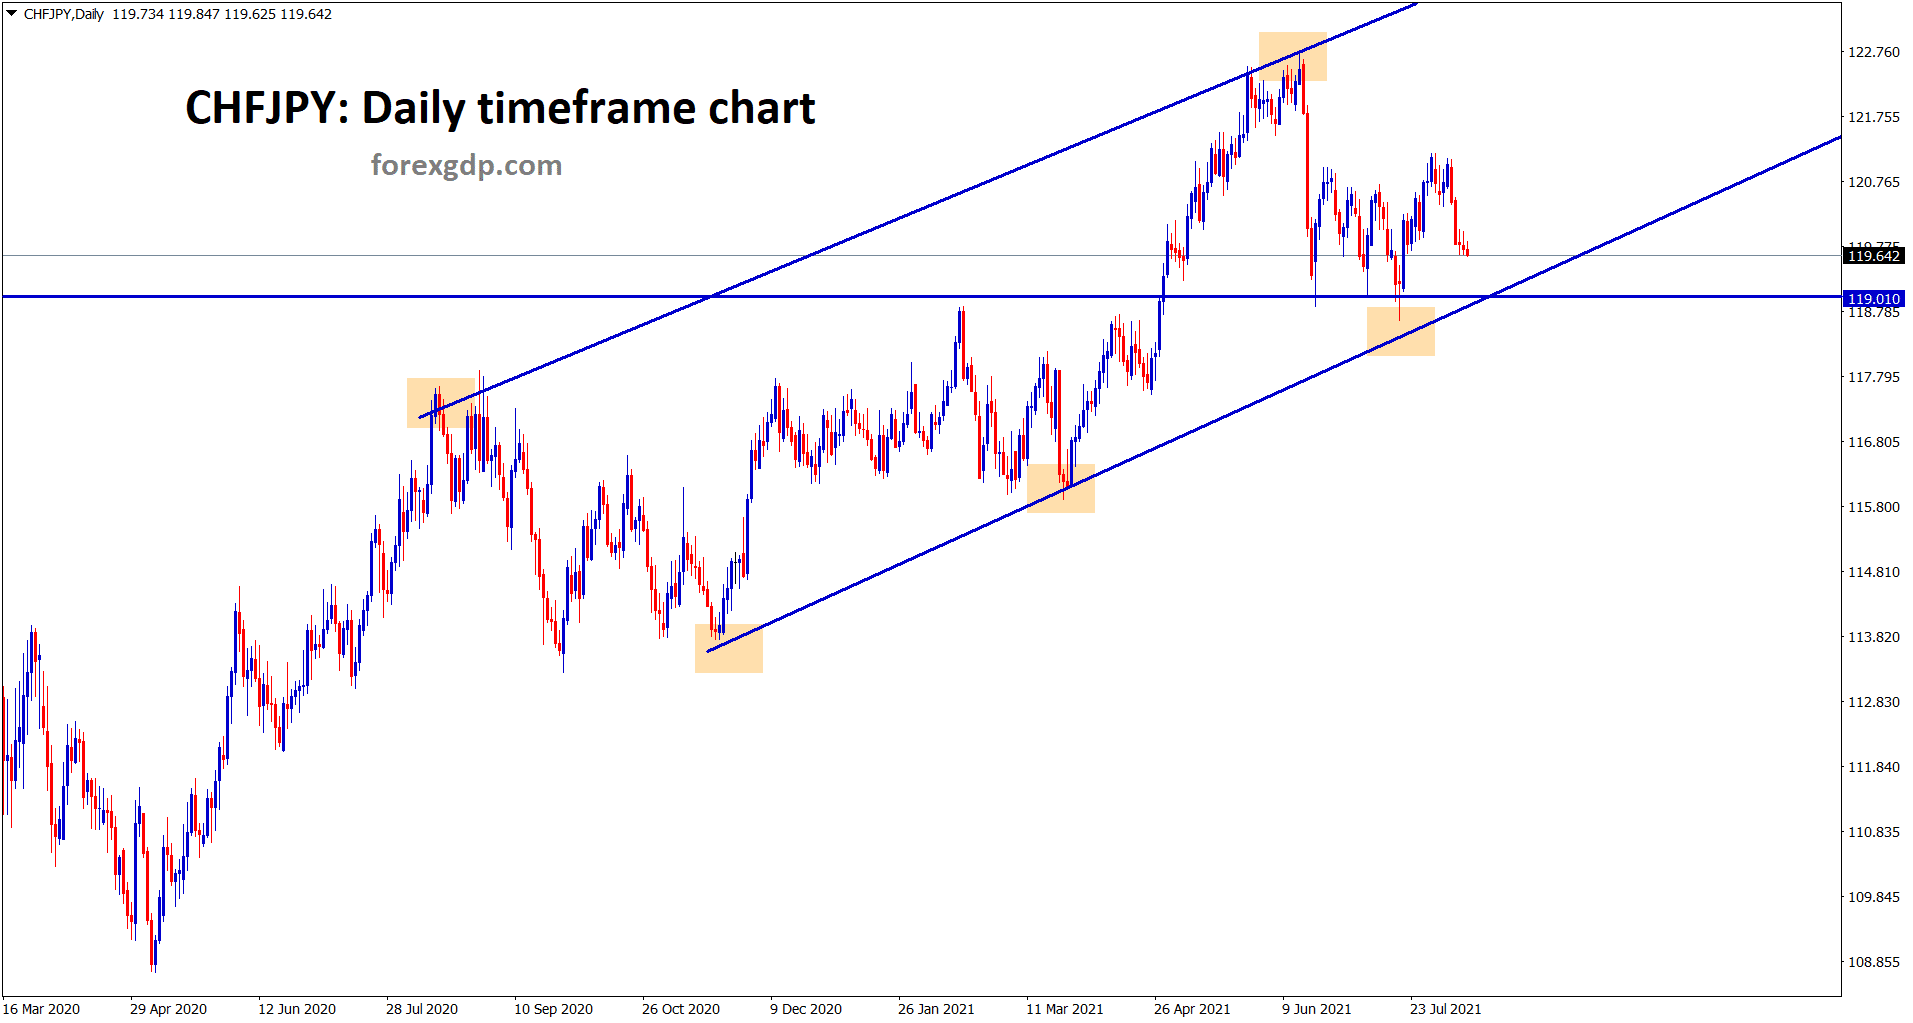 CHFJPY is moving in an ascending channel however market is now heading to the higher low again for the fourth time